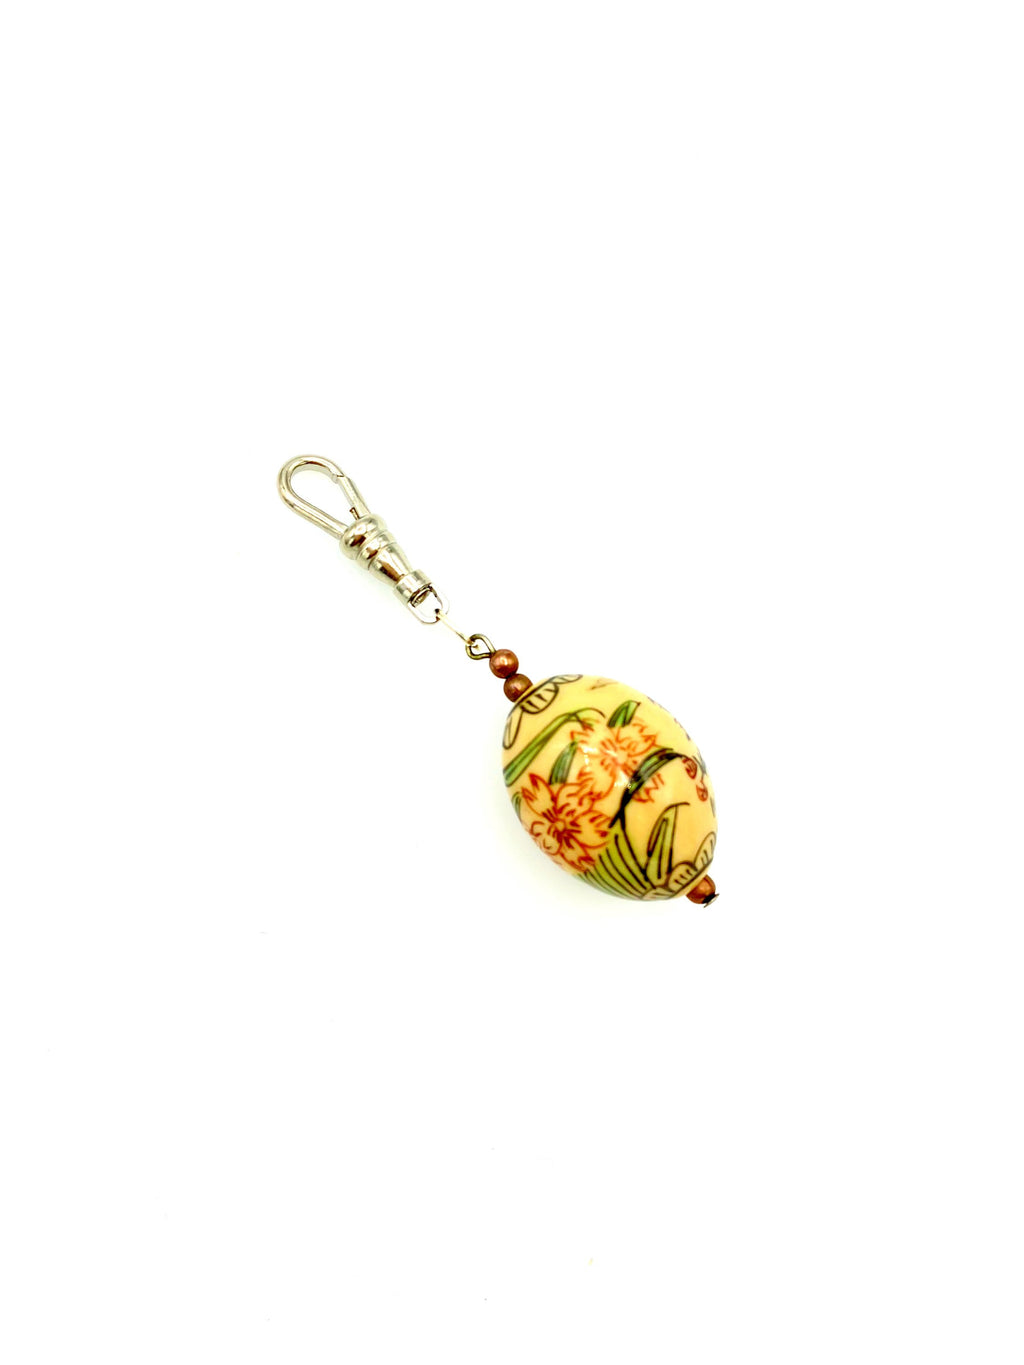 Asian Lacquer Floral Bead Charm Swivel Fob Jewelry